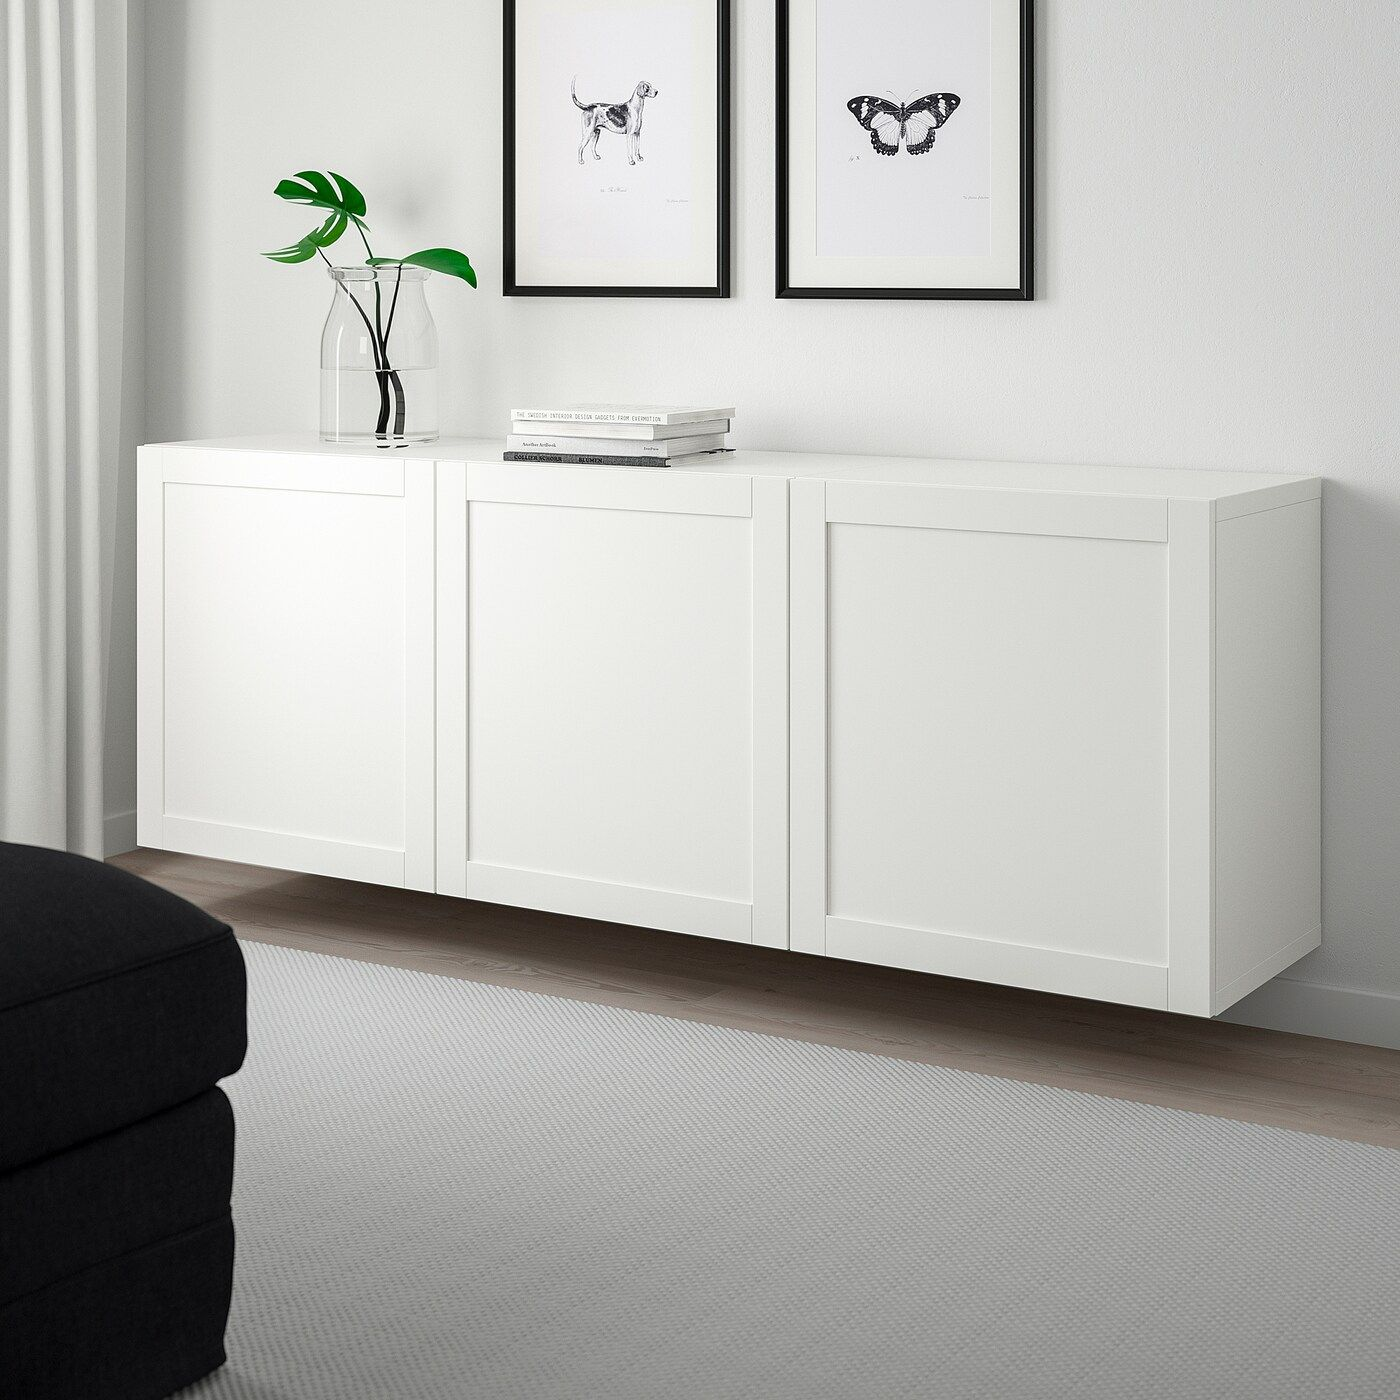 Wall Mounted Cabinet Ikea Floating, Ikea Living Room Storage Cabinets Sideboards